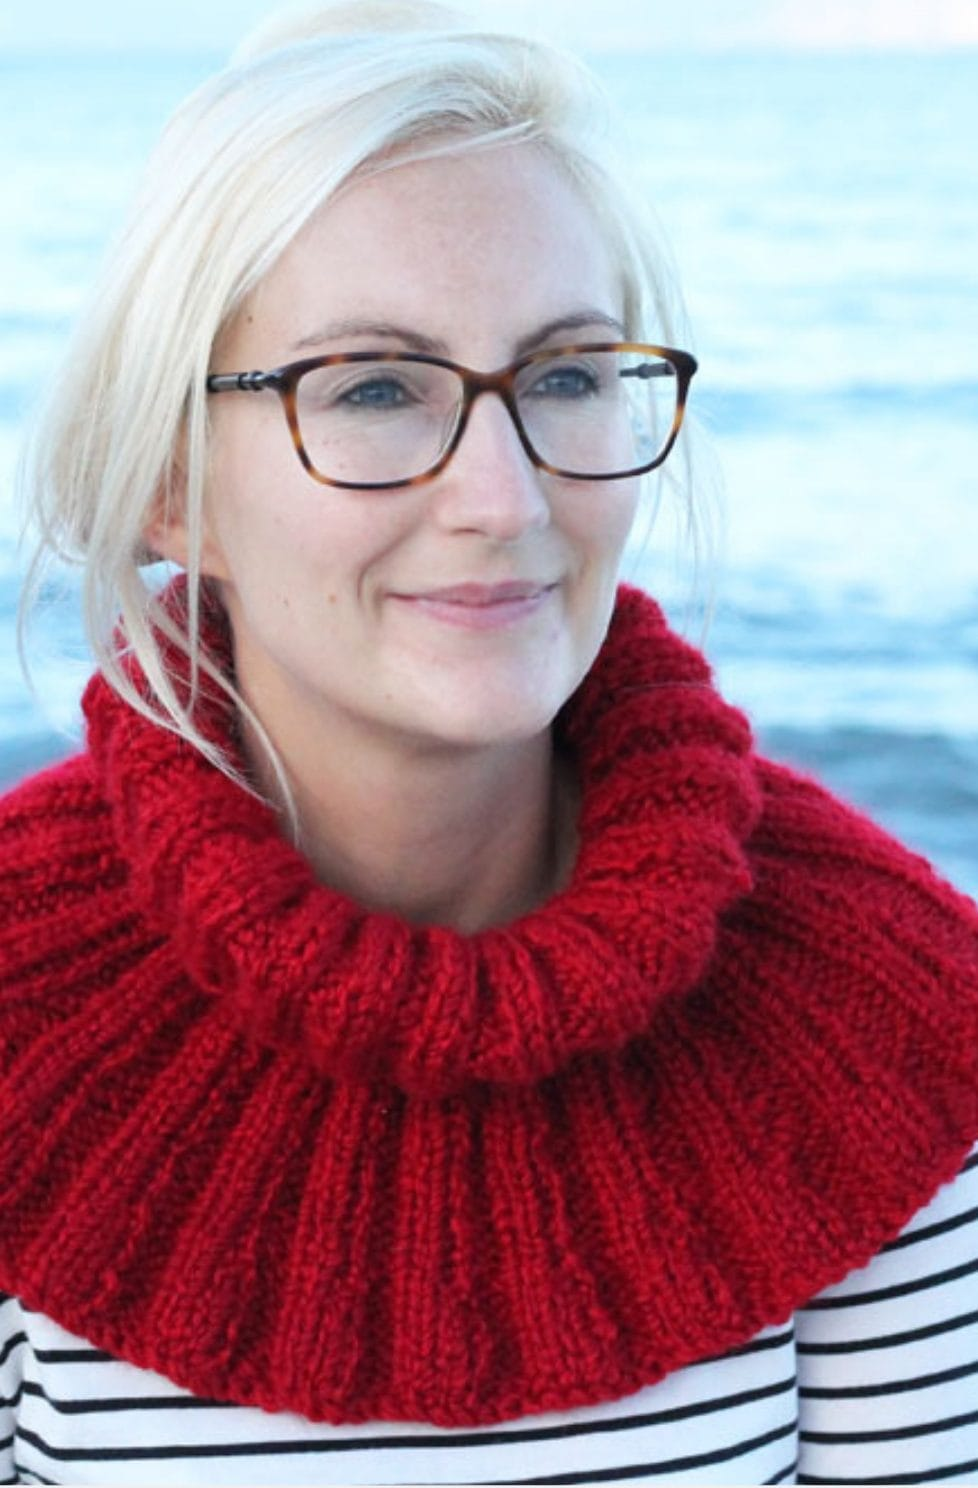 Cowl Knitting Pattern | The Pandora